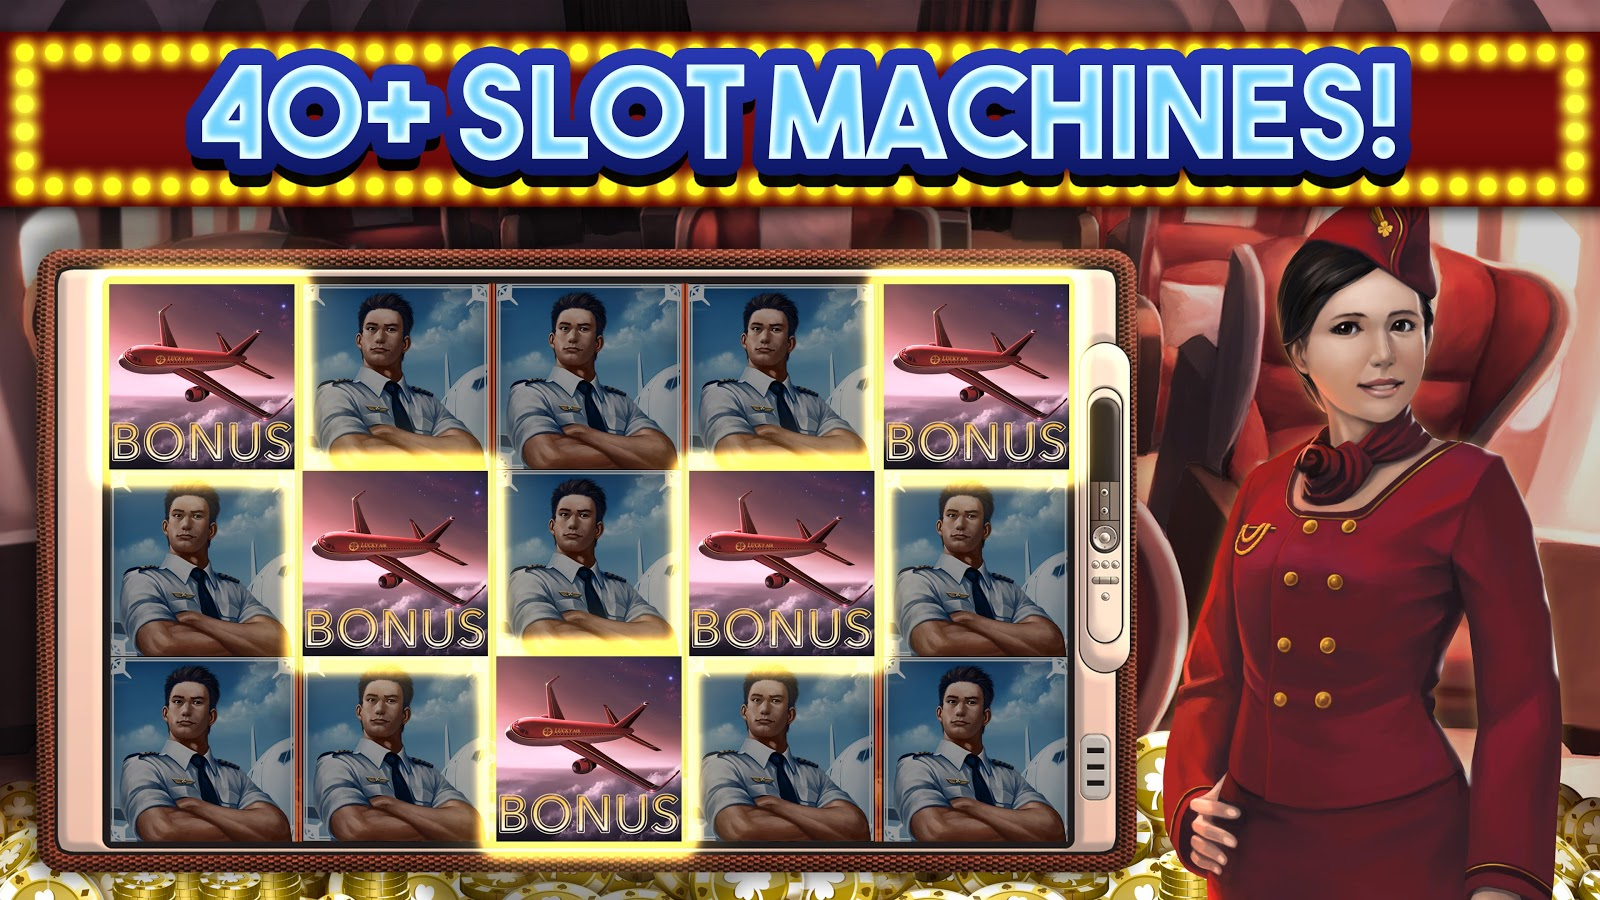 Slot-O-Matic Slot Machine - Play Now for Free or Real Money